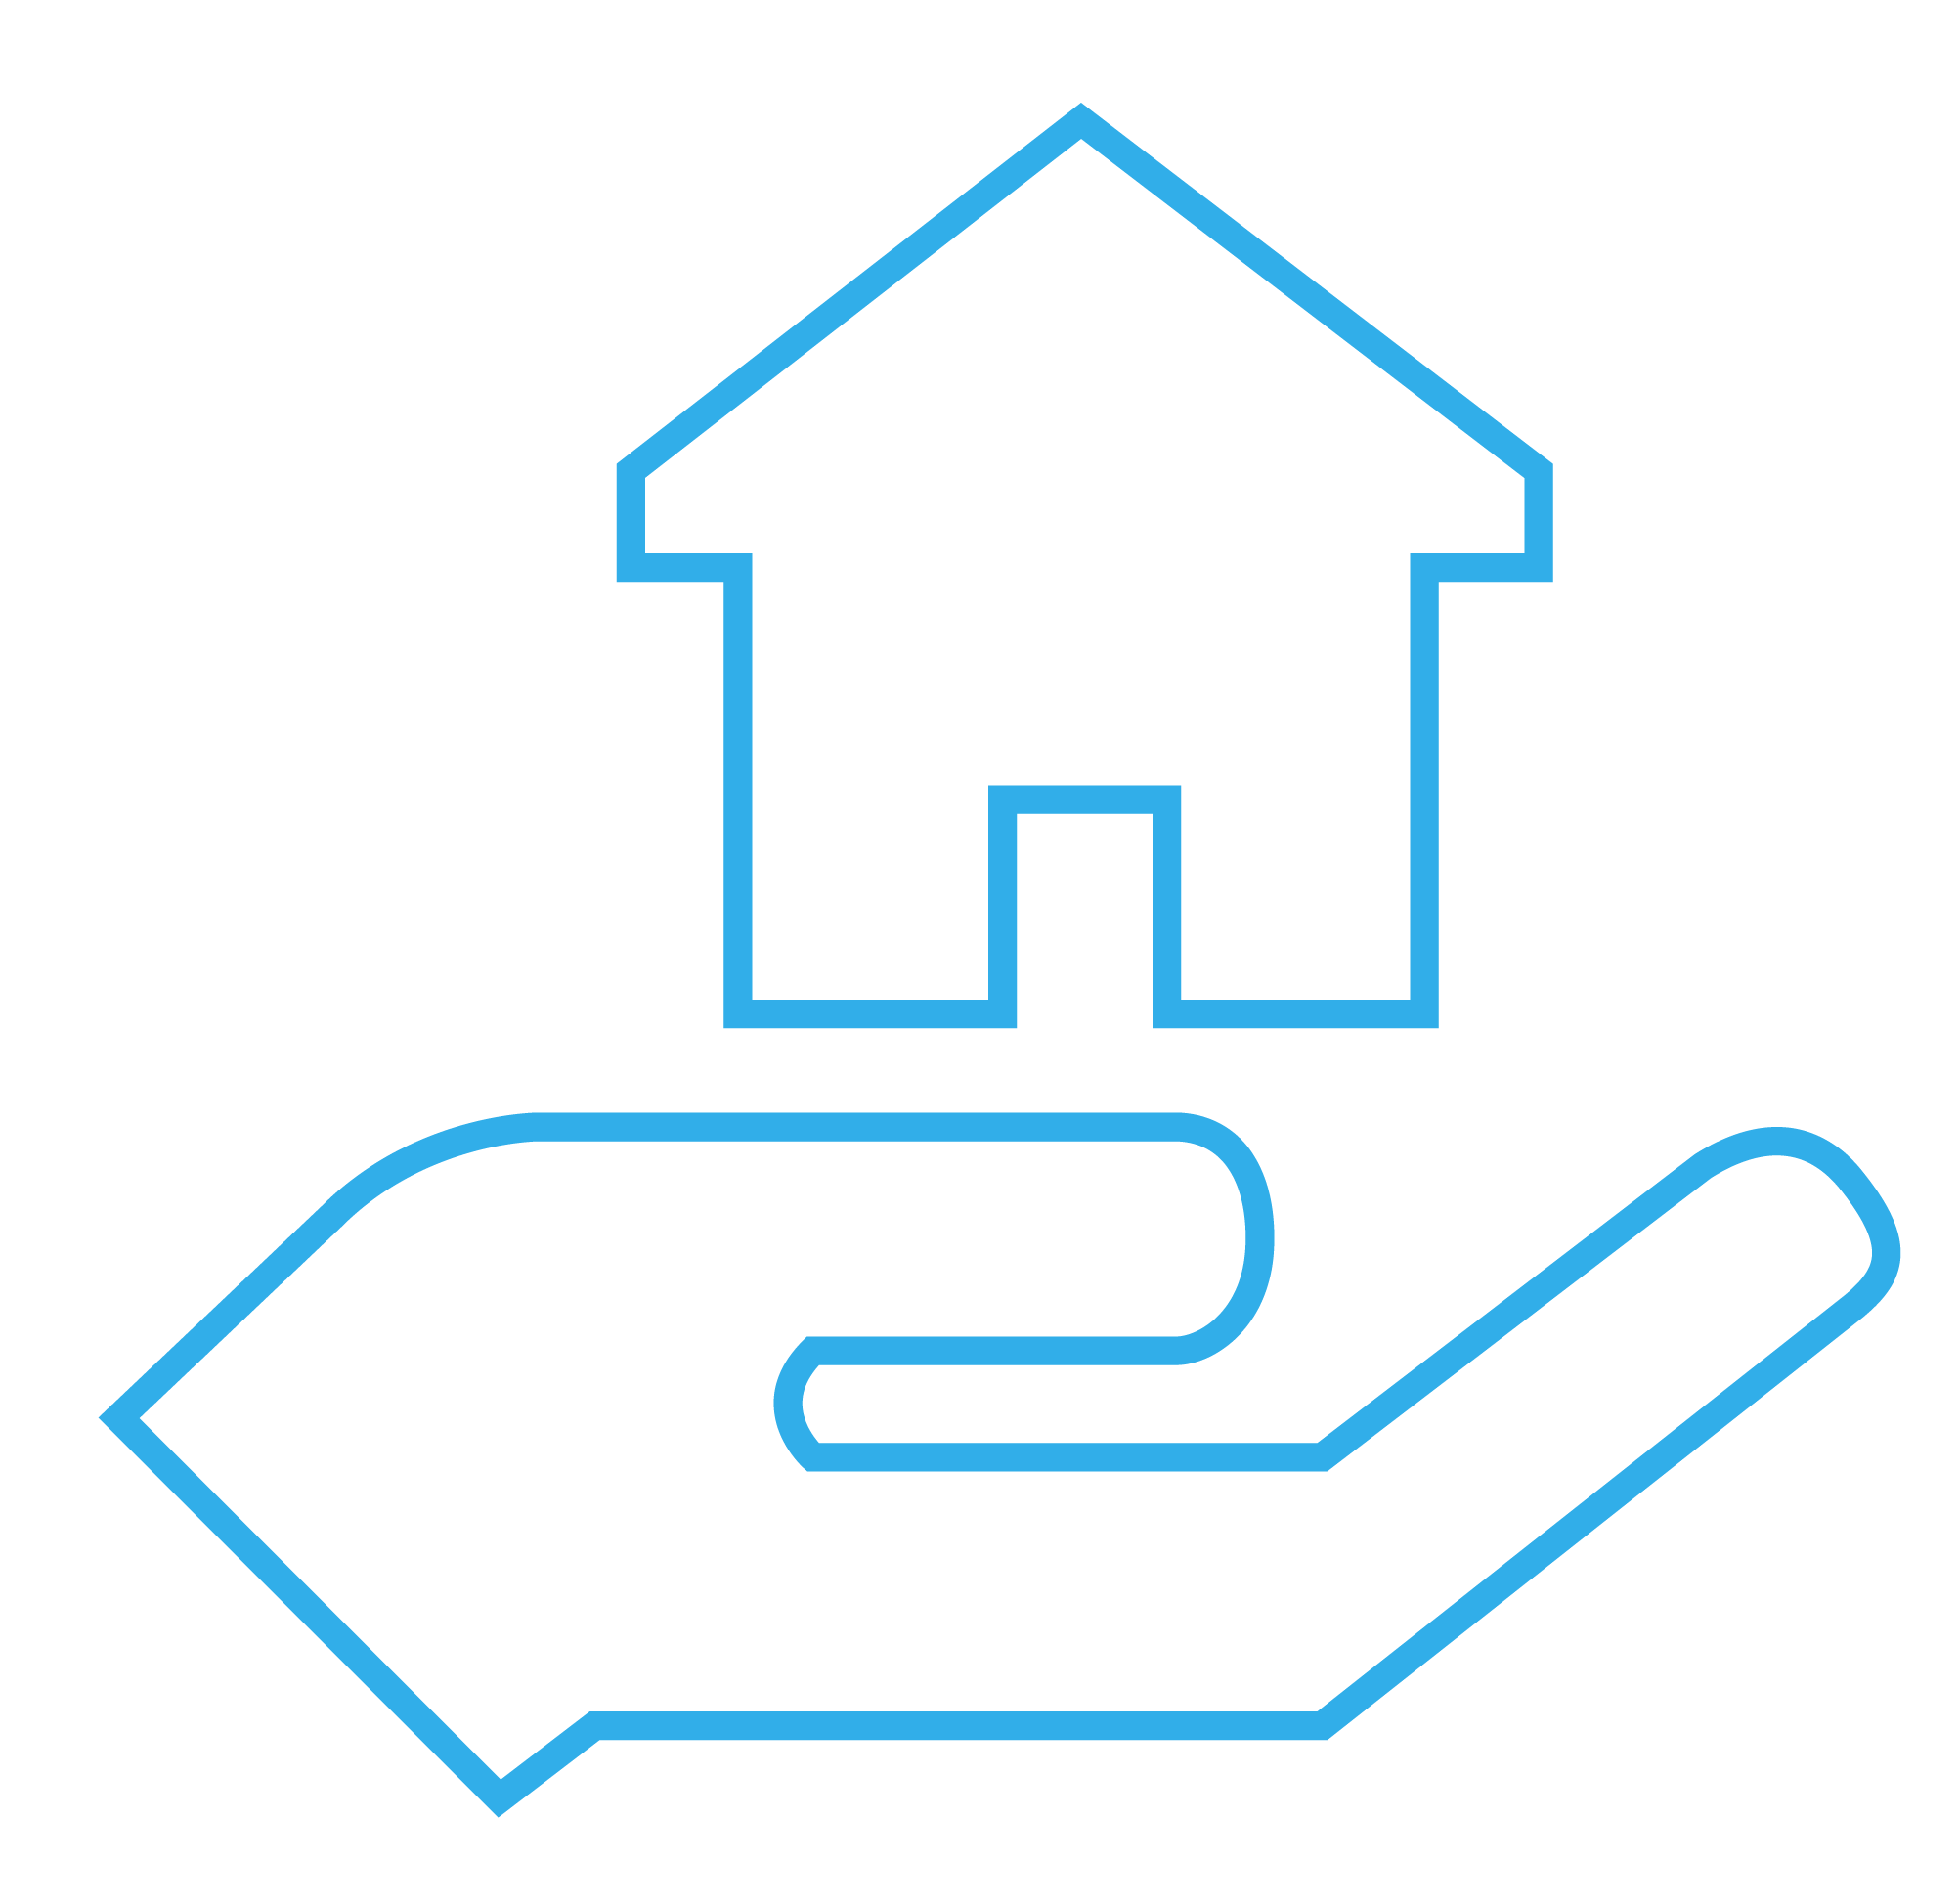 Solutions-Icons-Blue-05.png